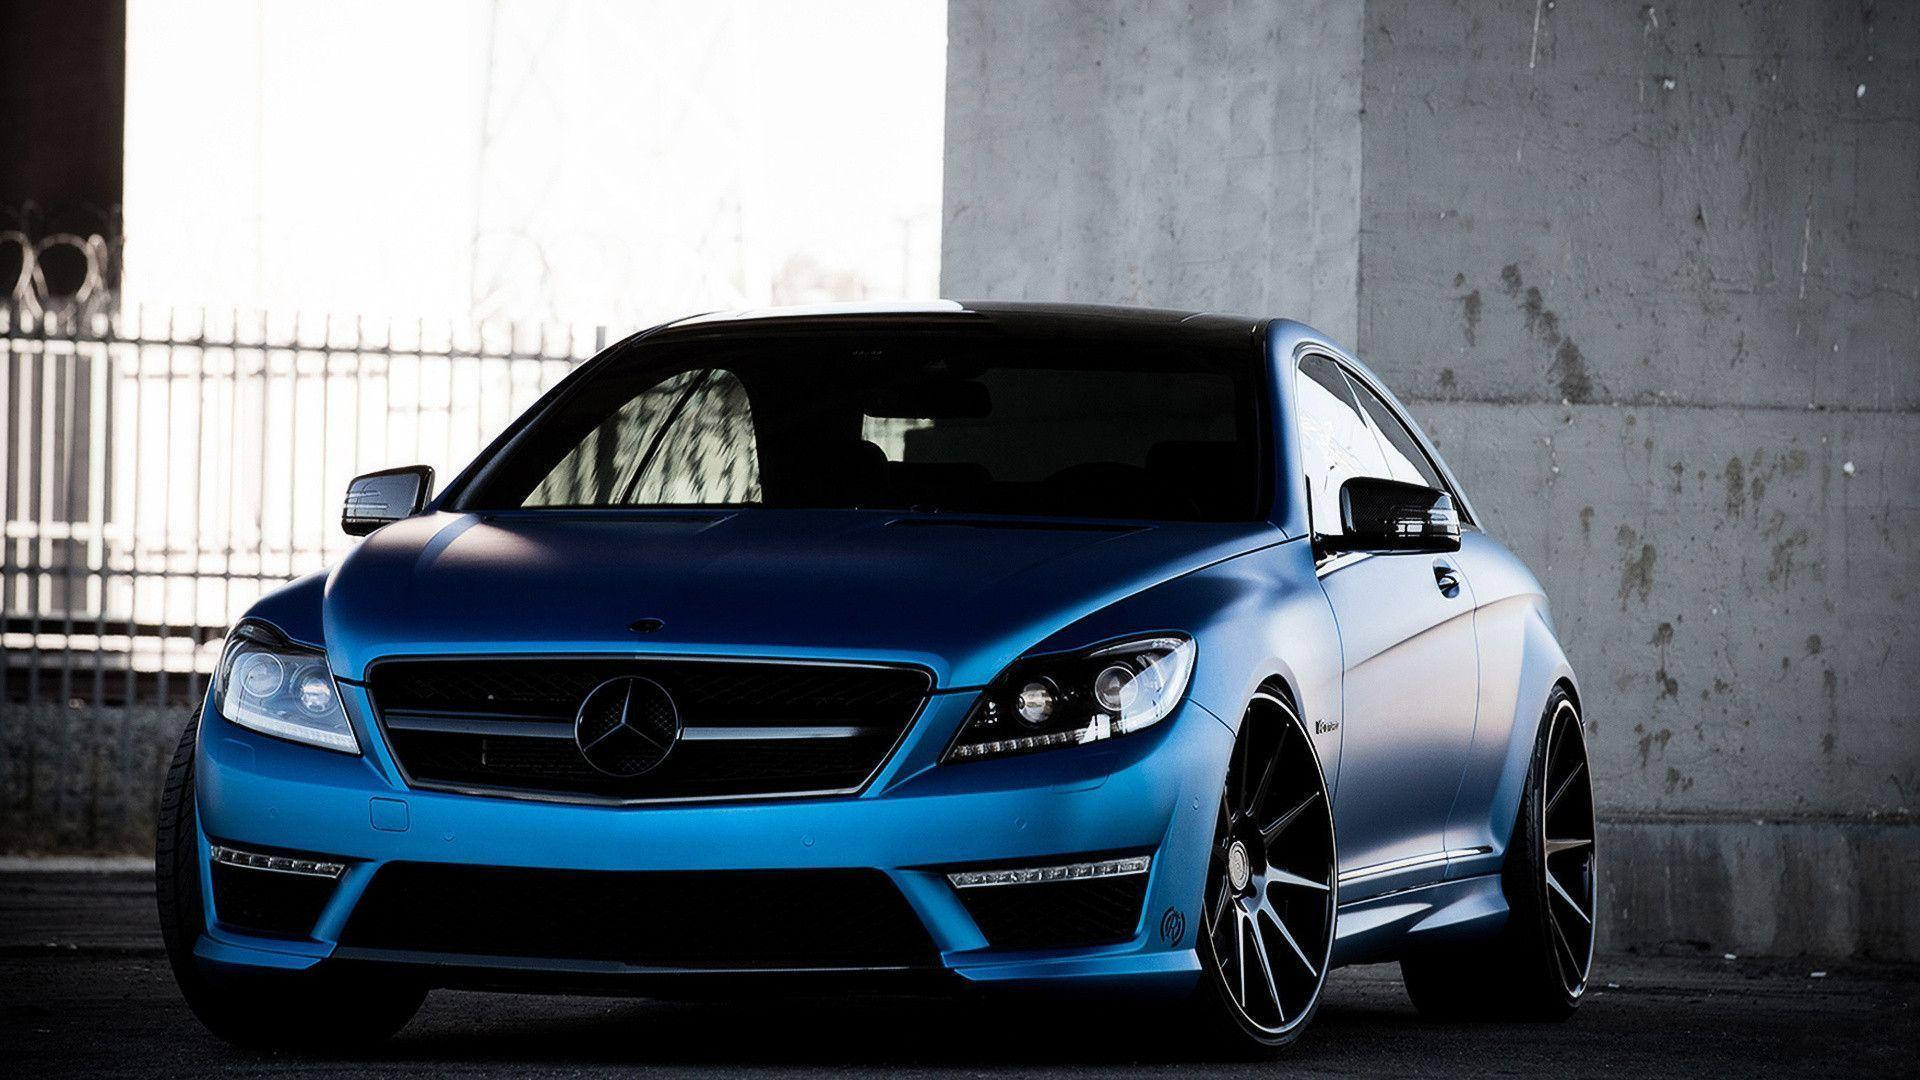 Mercedes AMG Wallpapers 1920x1080